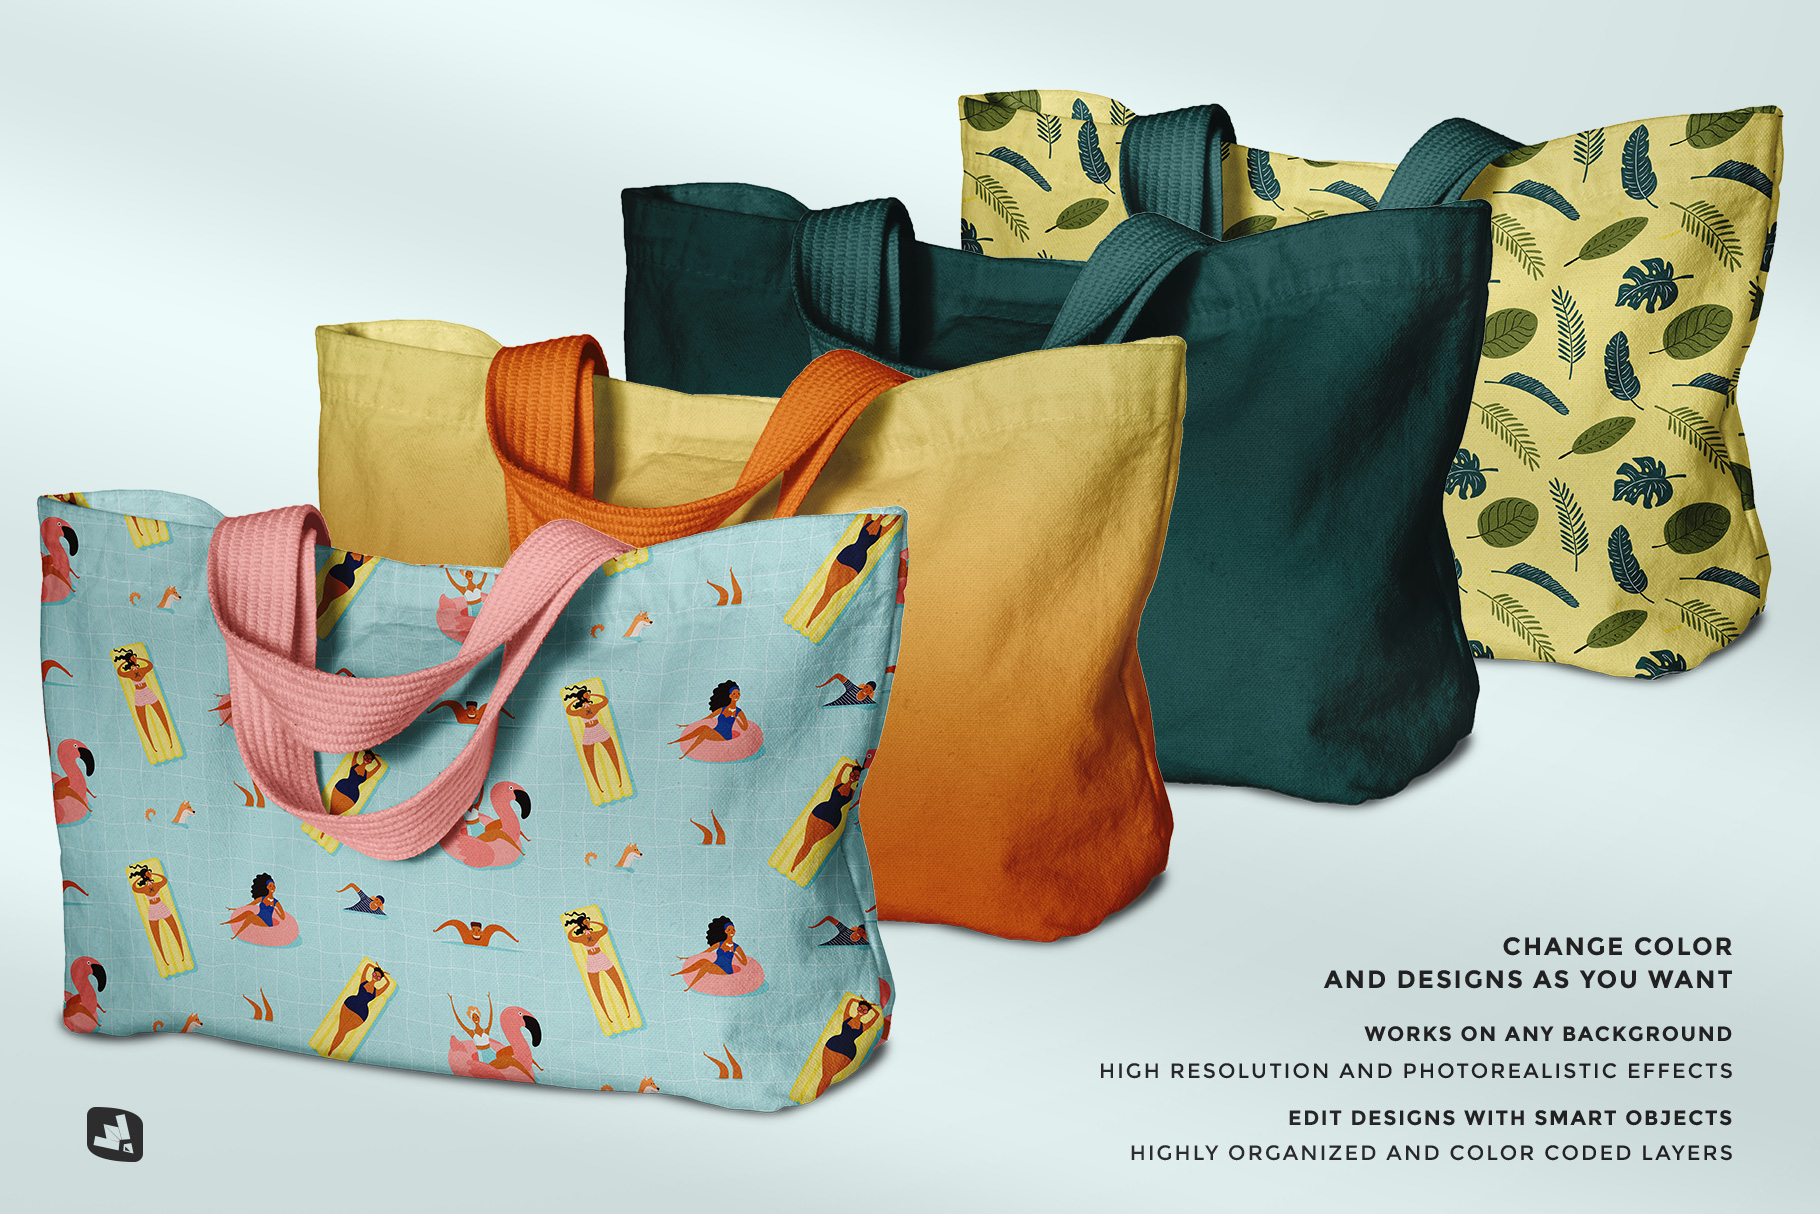 features of the reusable cotton cloth bag mockup